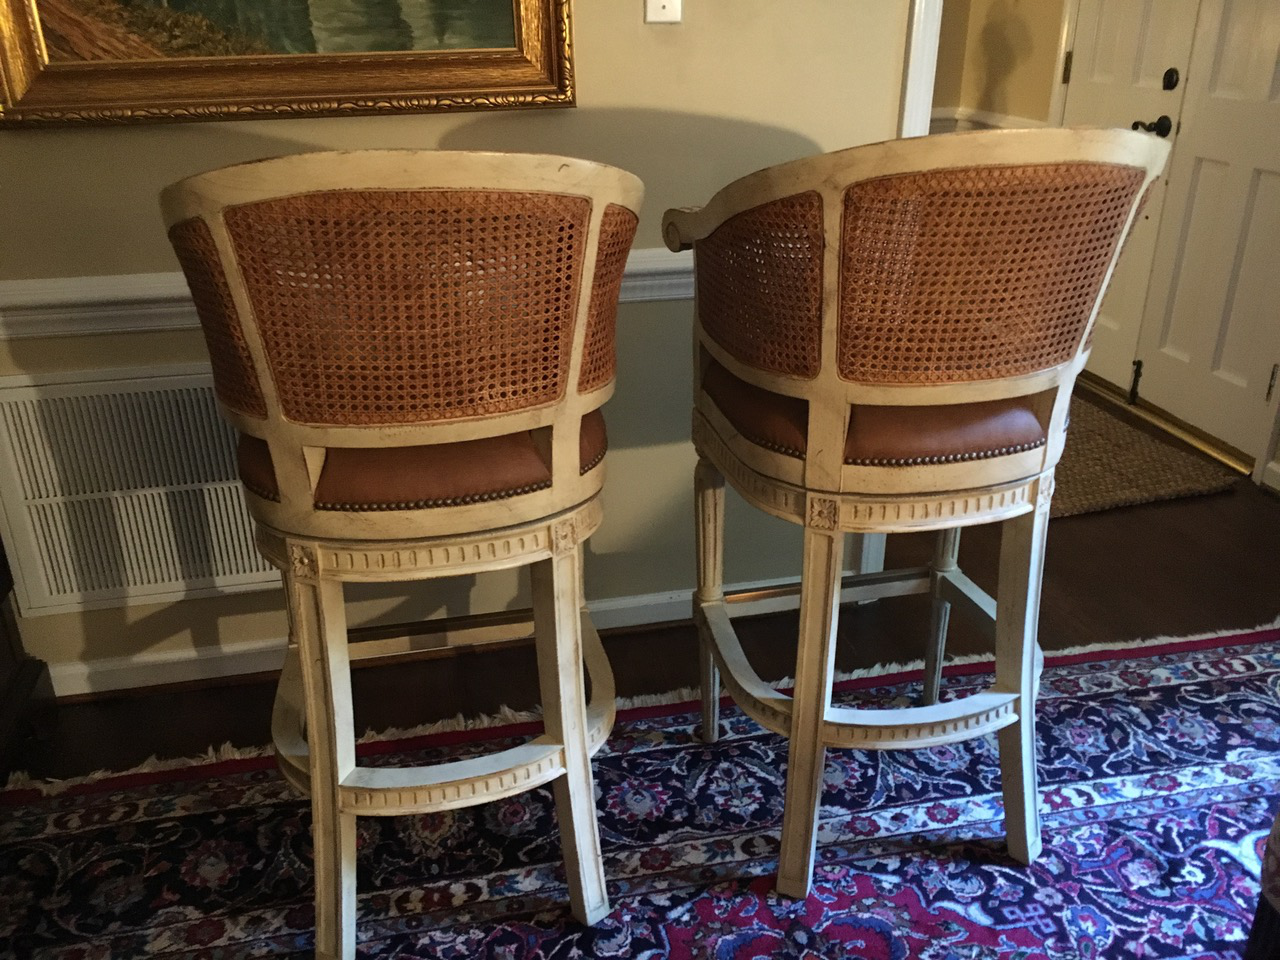 4 Swivel Bar Stools By Pama Of High Point, Nc   Image 10 Of 10 Part 39